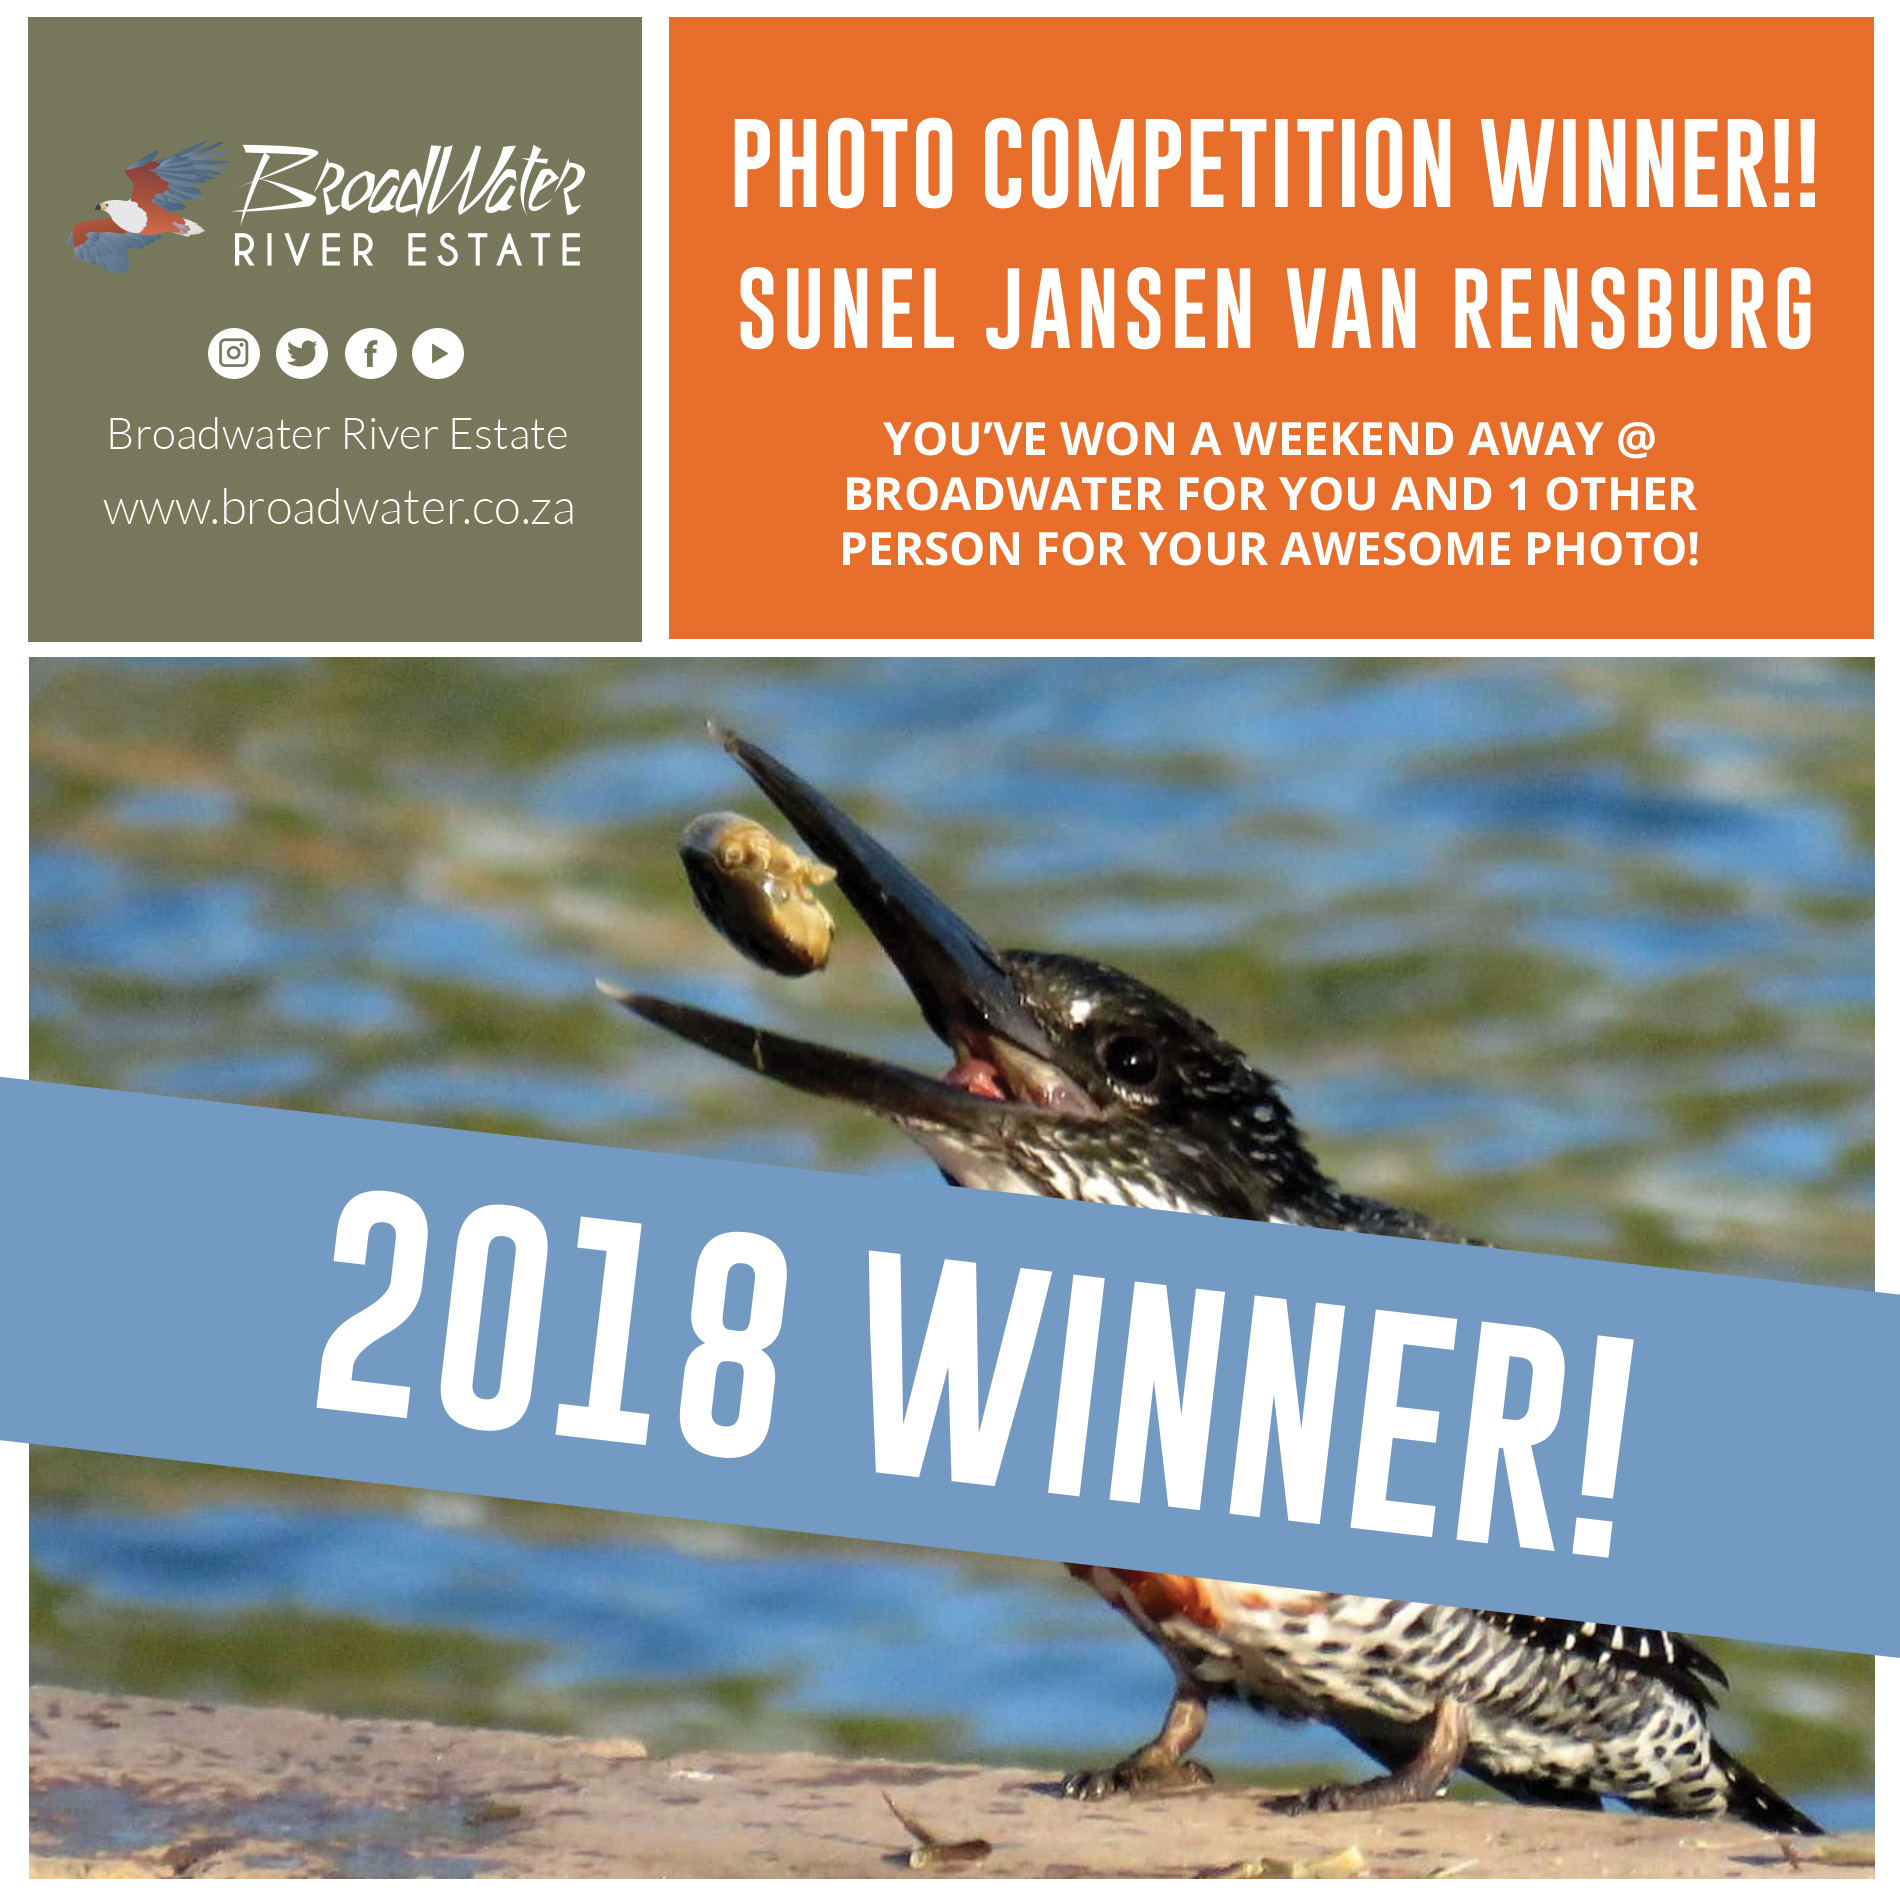 Broadwater photo competition winner 2018